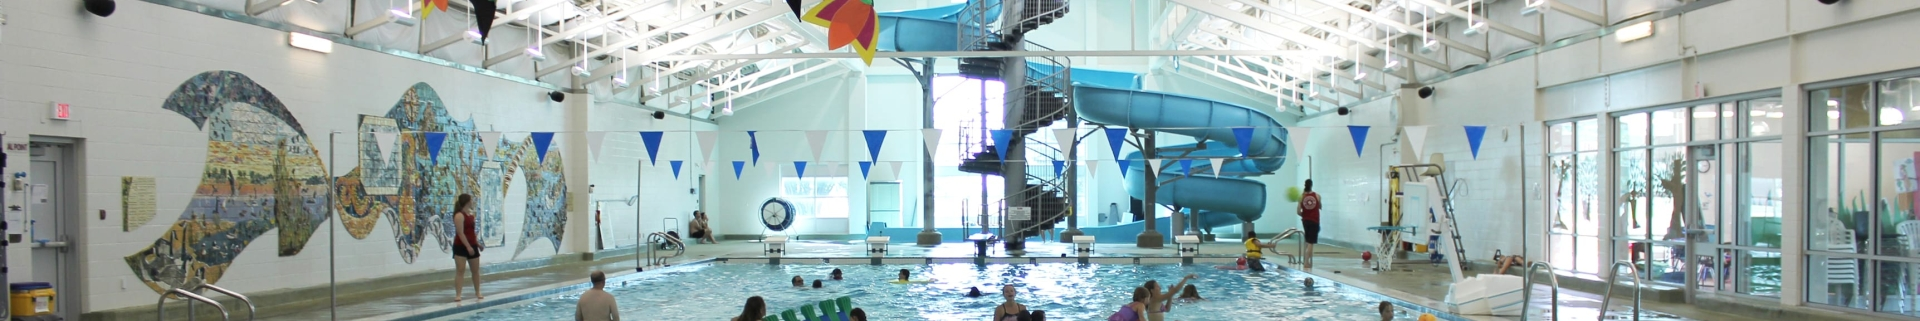 Children and adults swimming in view of the swimming pool and waterslide at the Olds Aquatic Centre